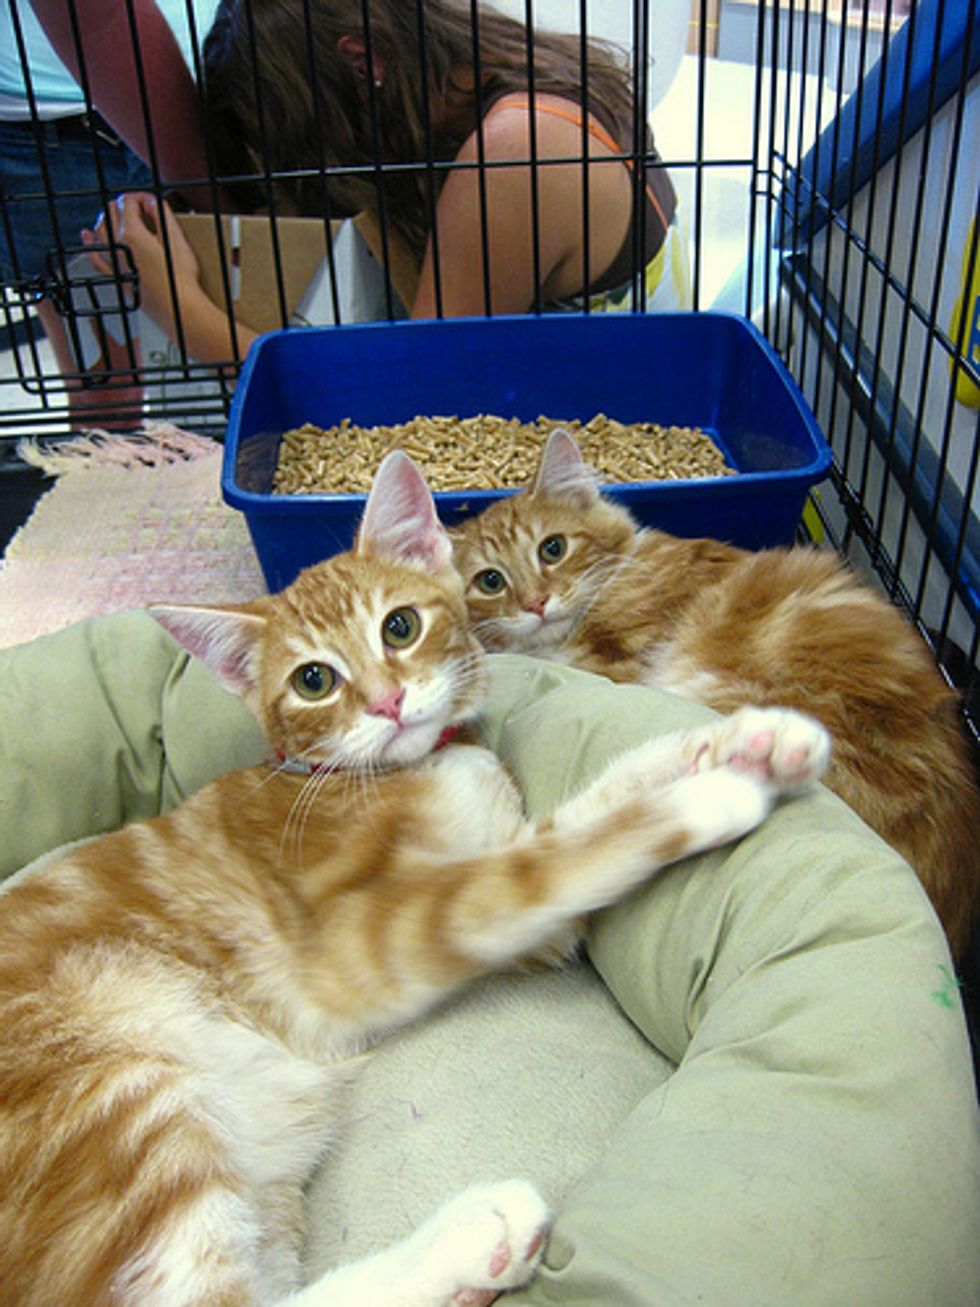 10 Good Reasons to Take in a Shelter Cat